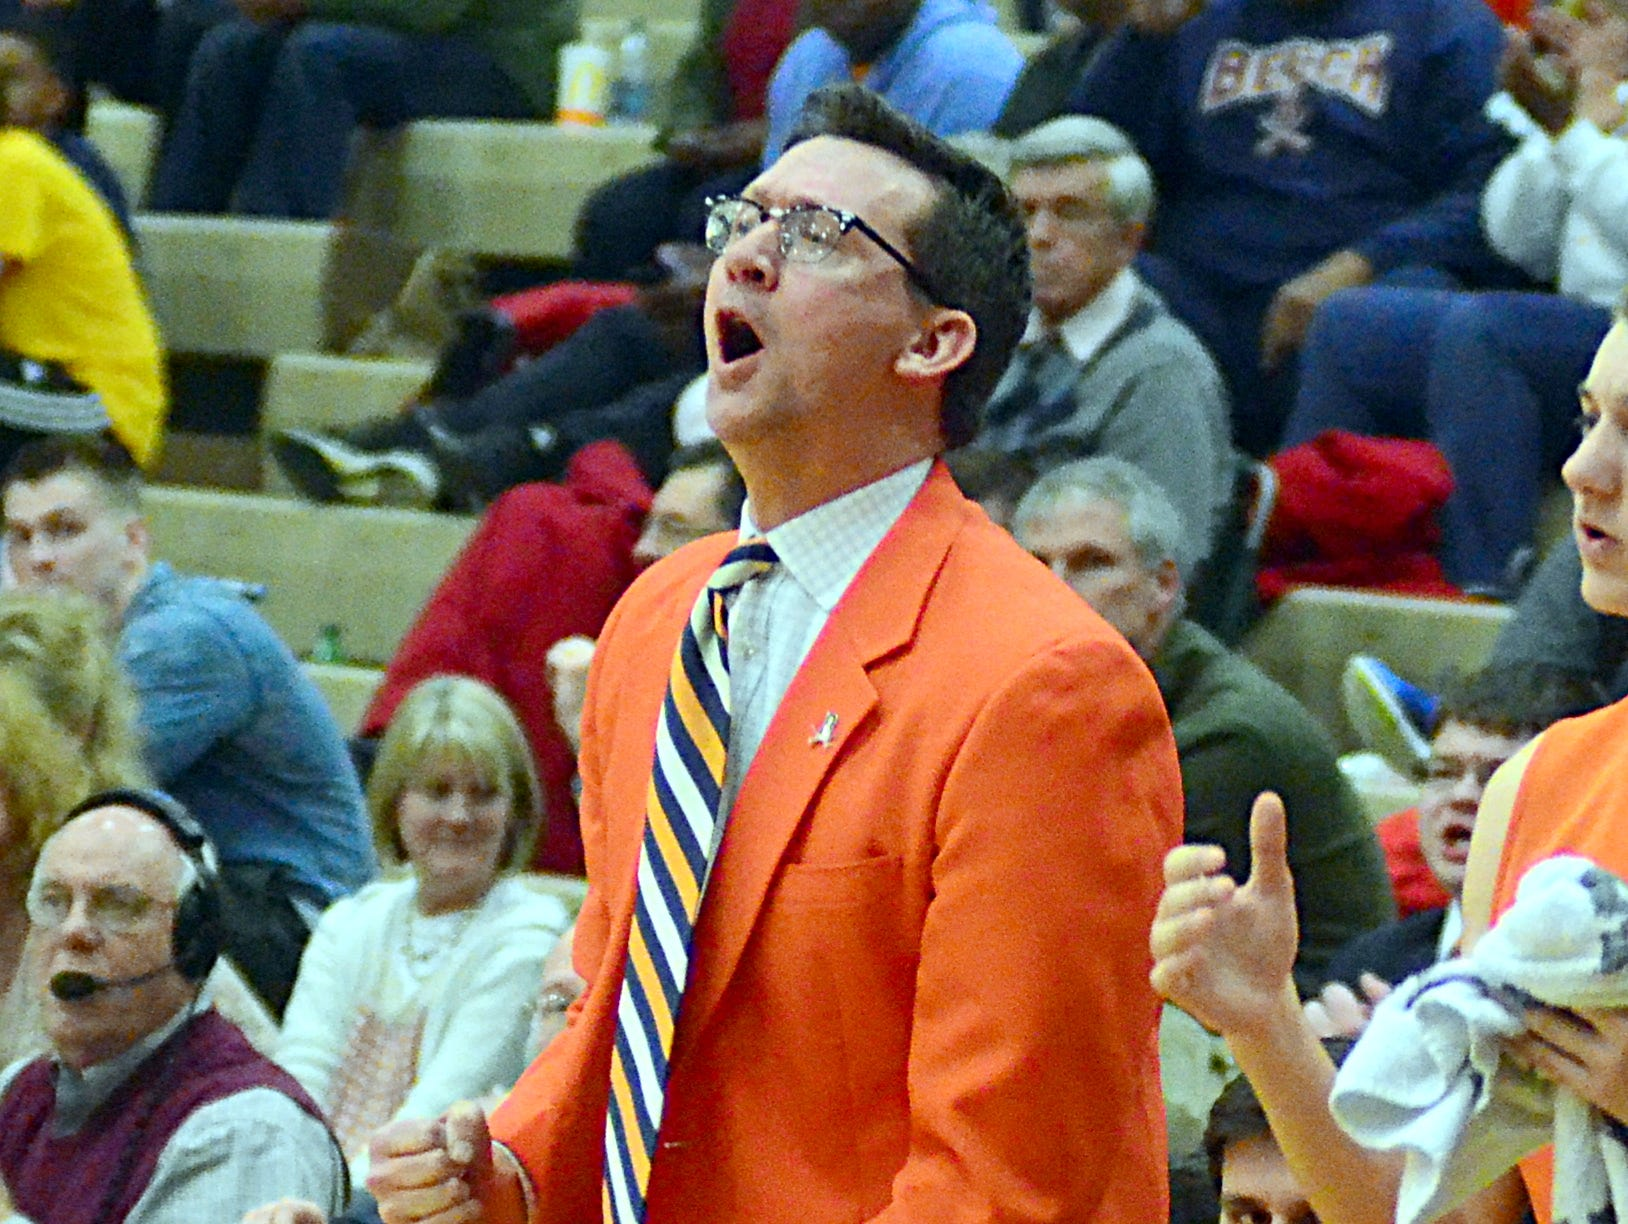 Beech High boys basketball head coach Darrin Joines announced his resignation on Monday after 16 seasons as the Buccaneers' head coach.